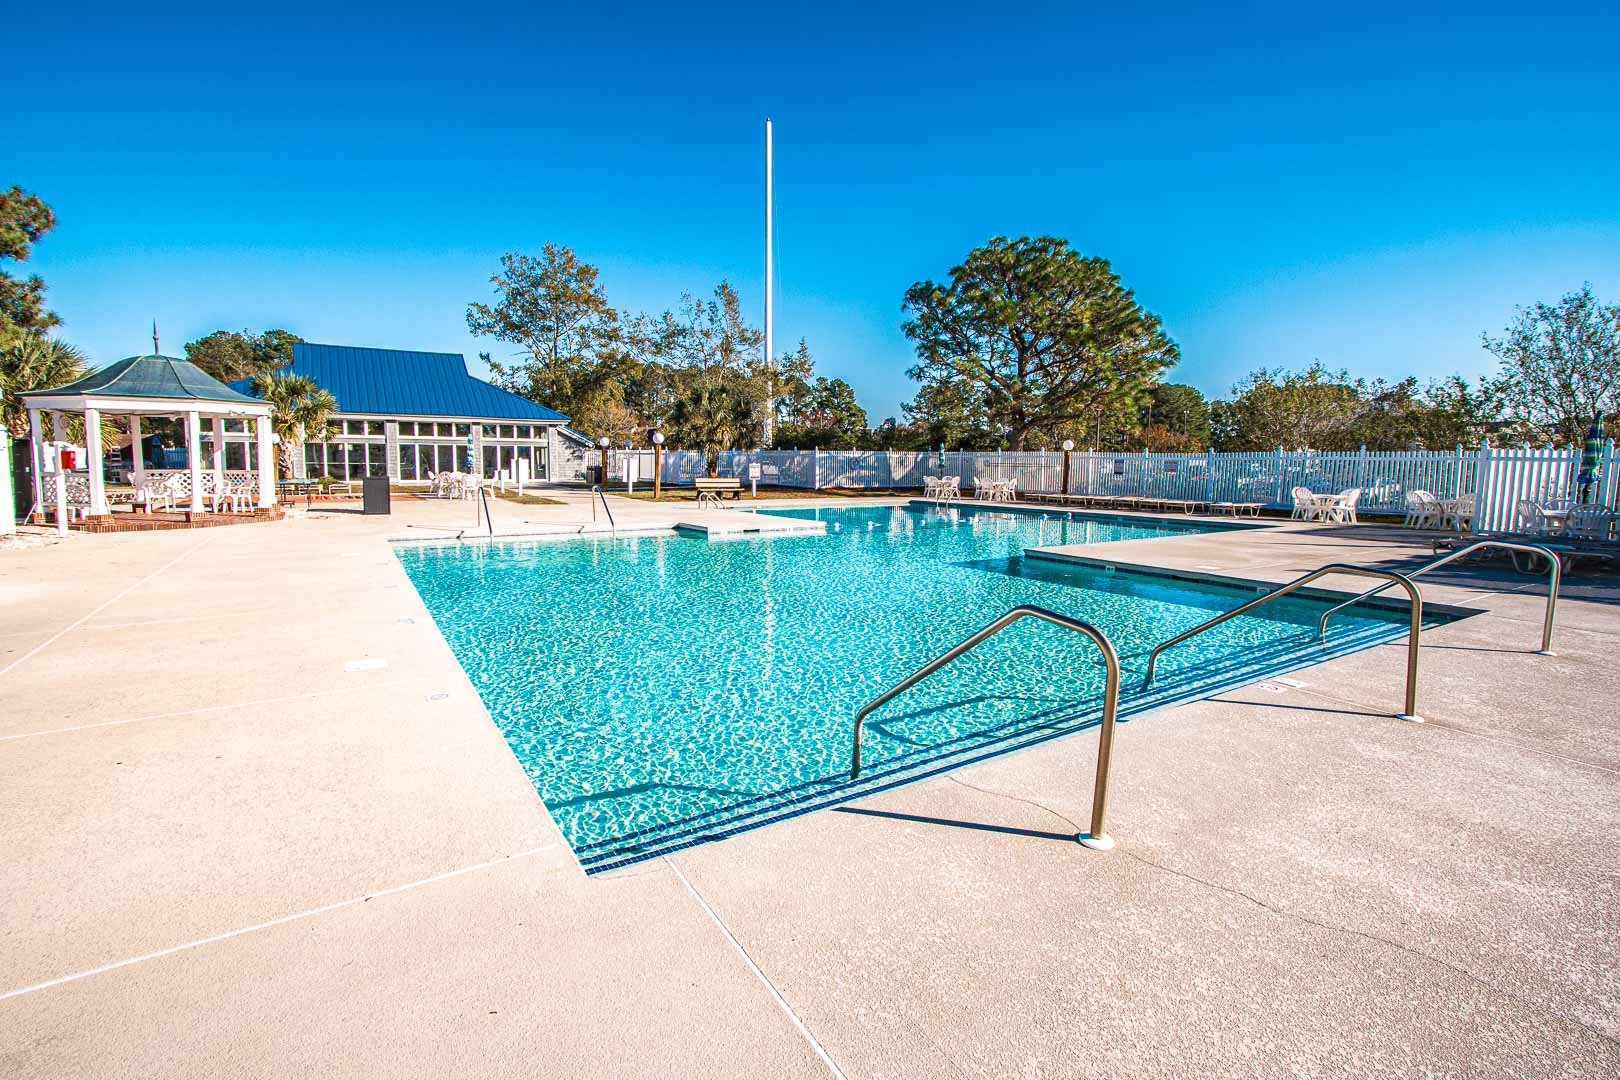 A spacious outdoor swimming pool at VRI's Harbourside II in New Bern, North Carolina.